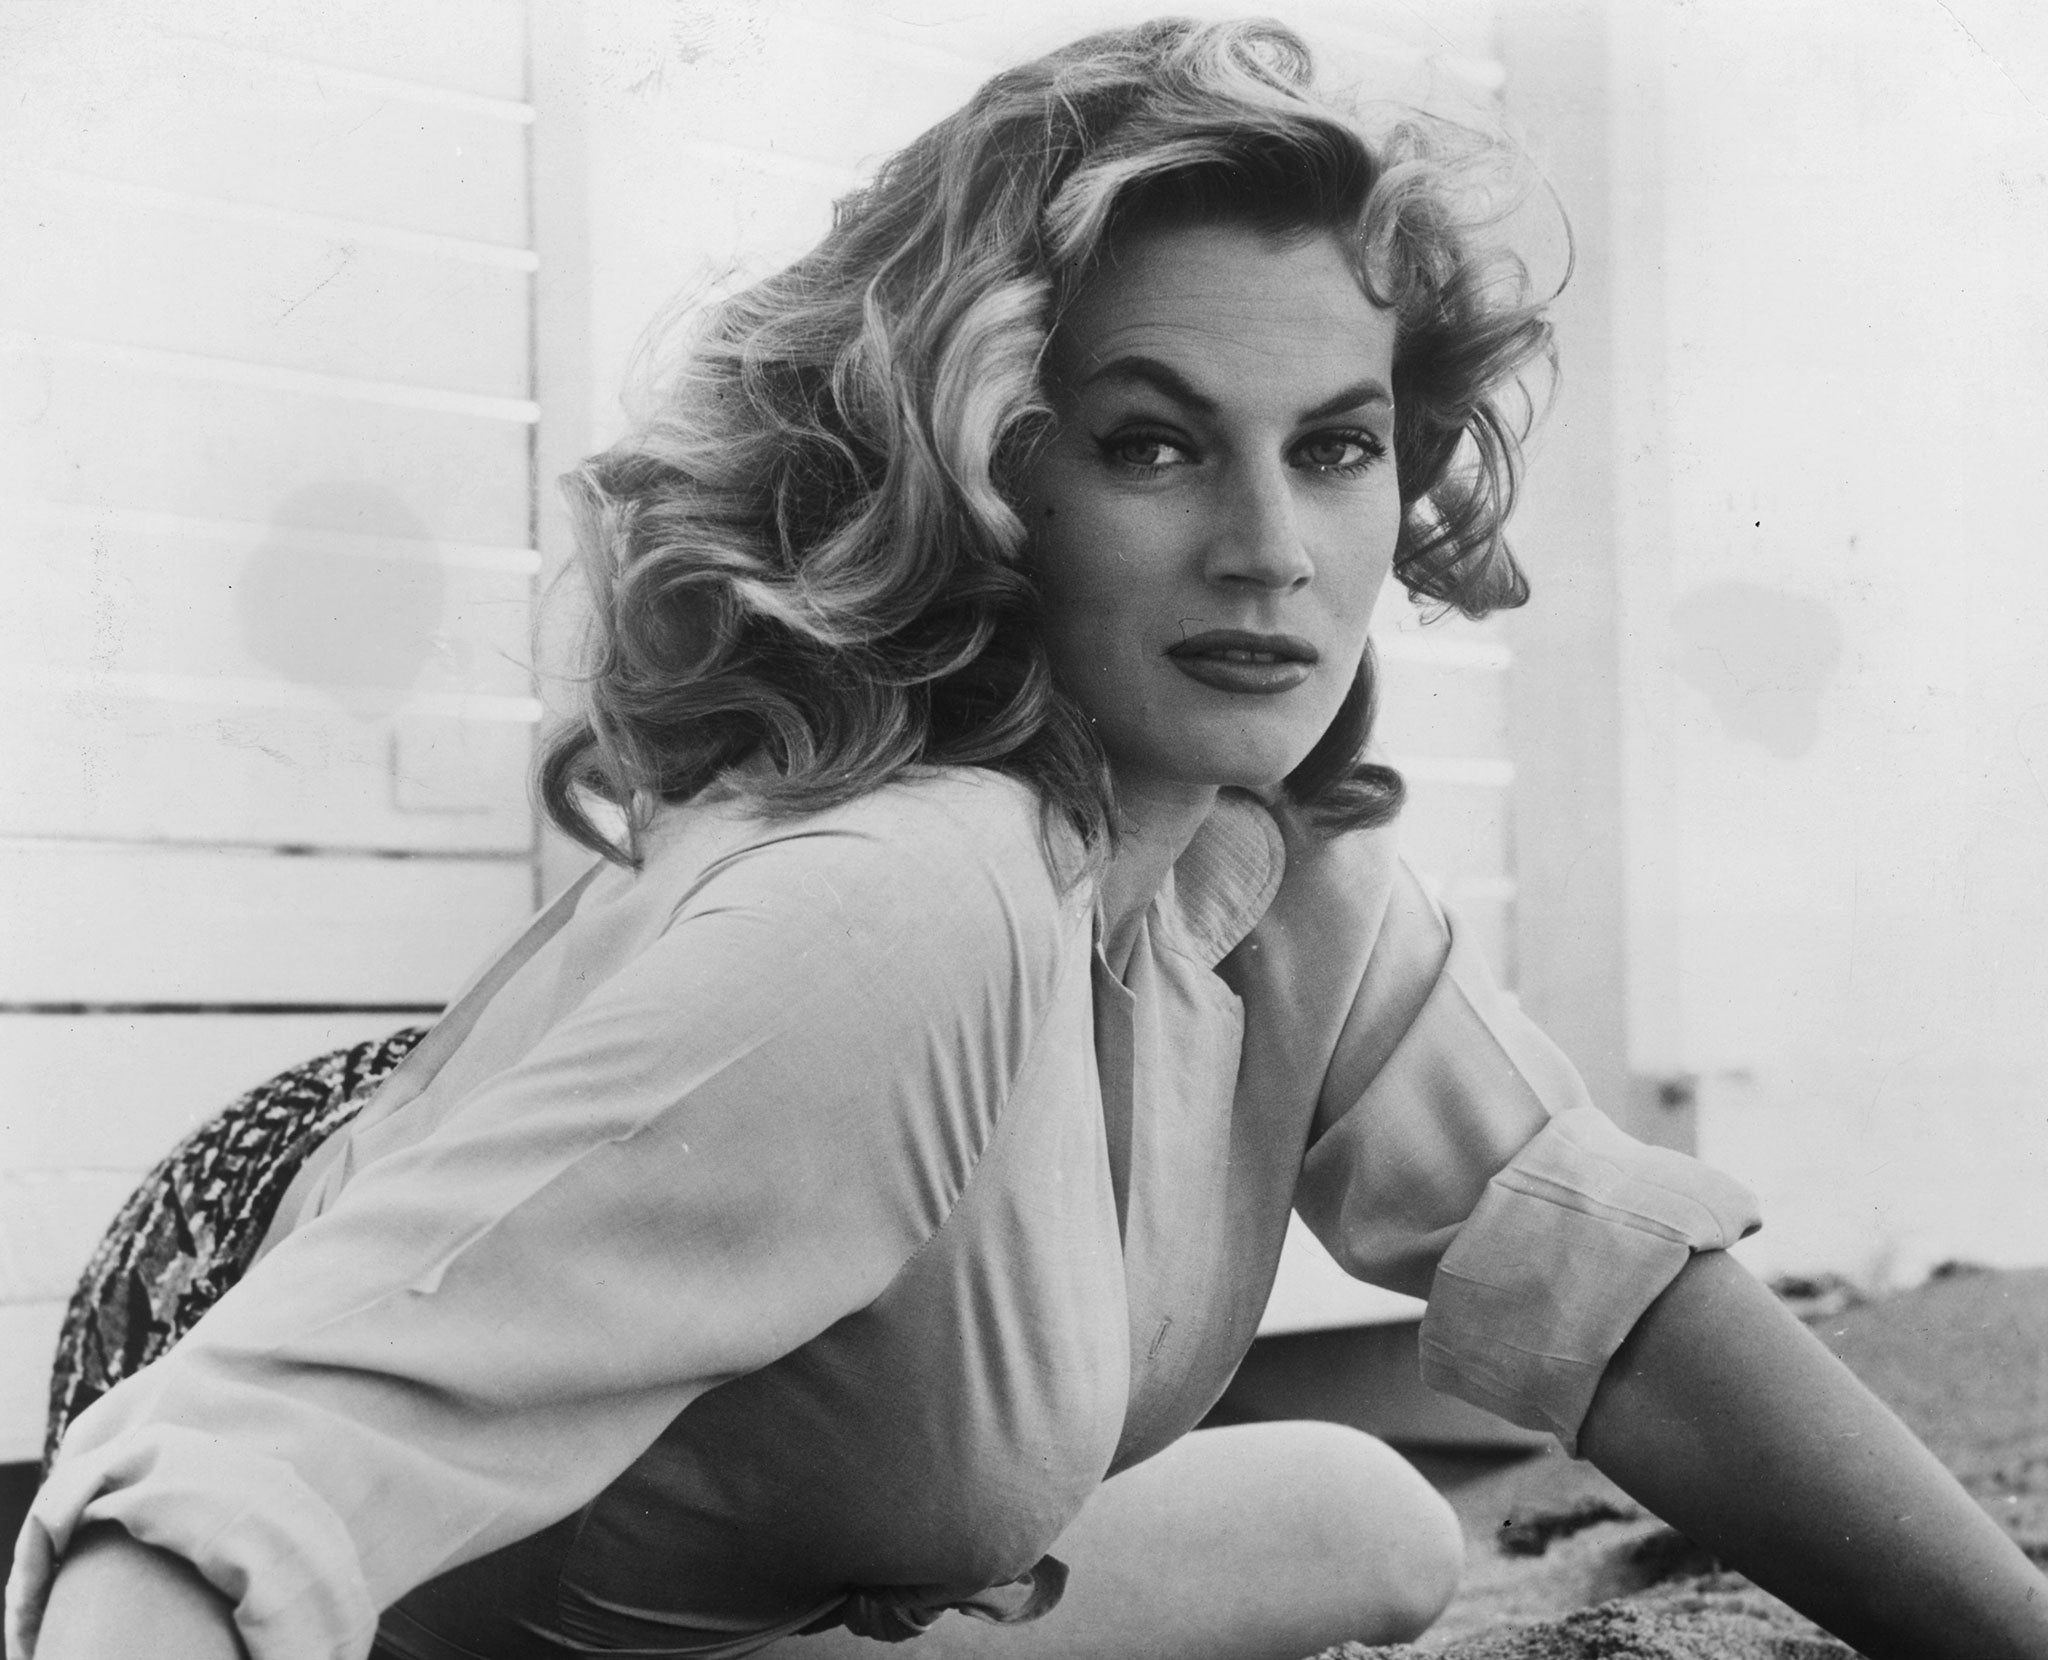 anita ekberg star of la dolce vita dies aged 83 the independent. Black Bedroom Furniture Sets. Home Design Ideas